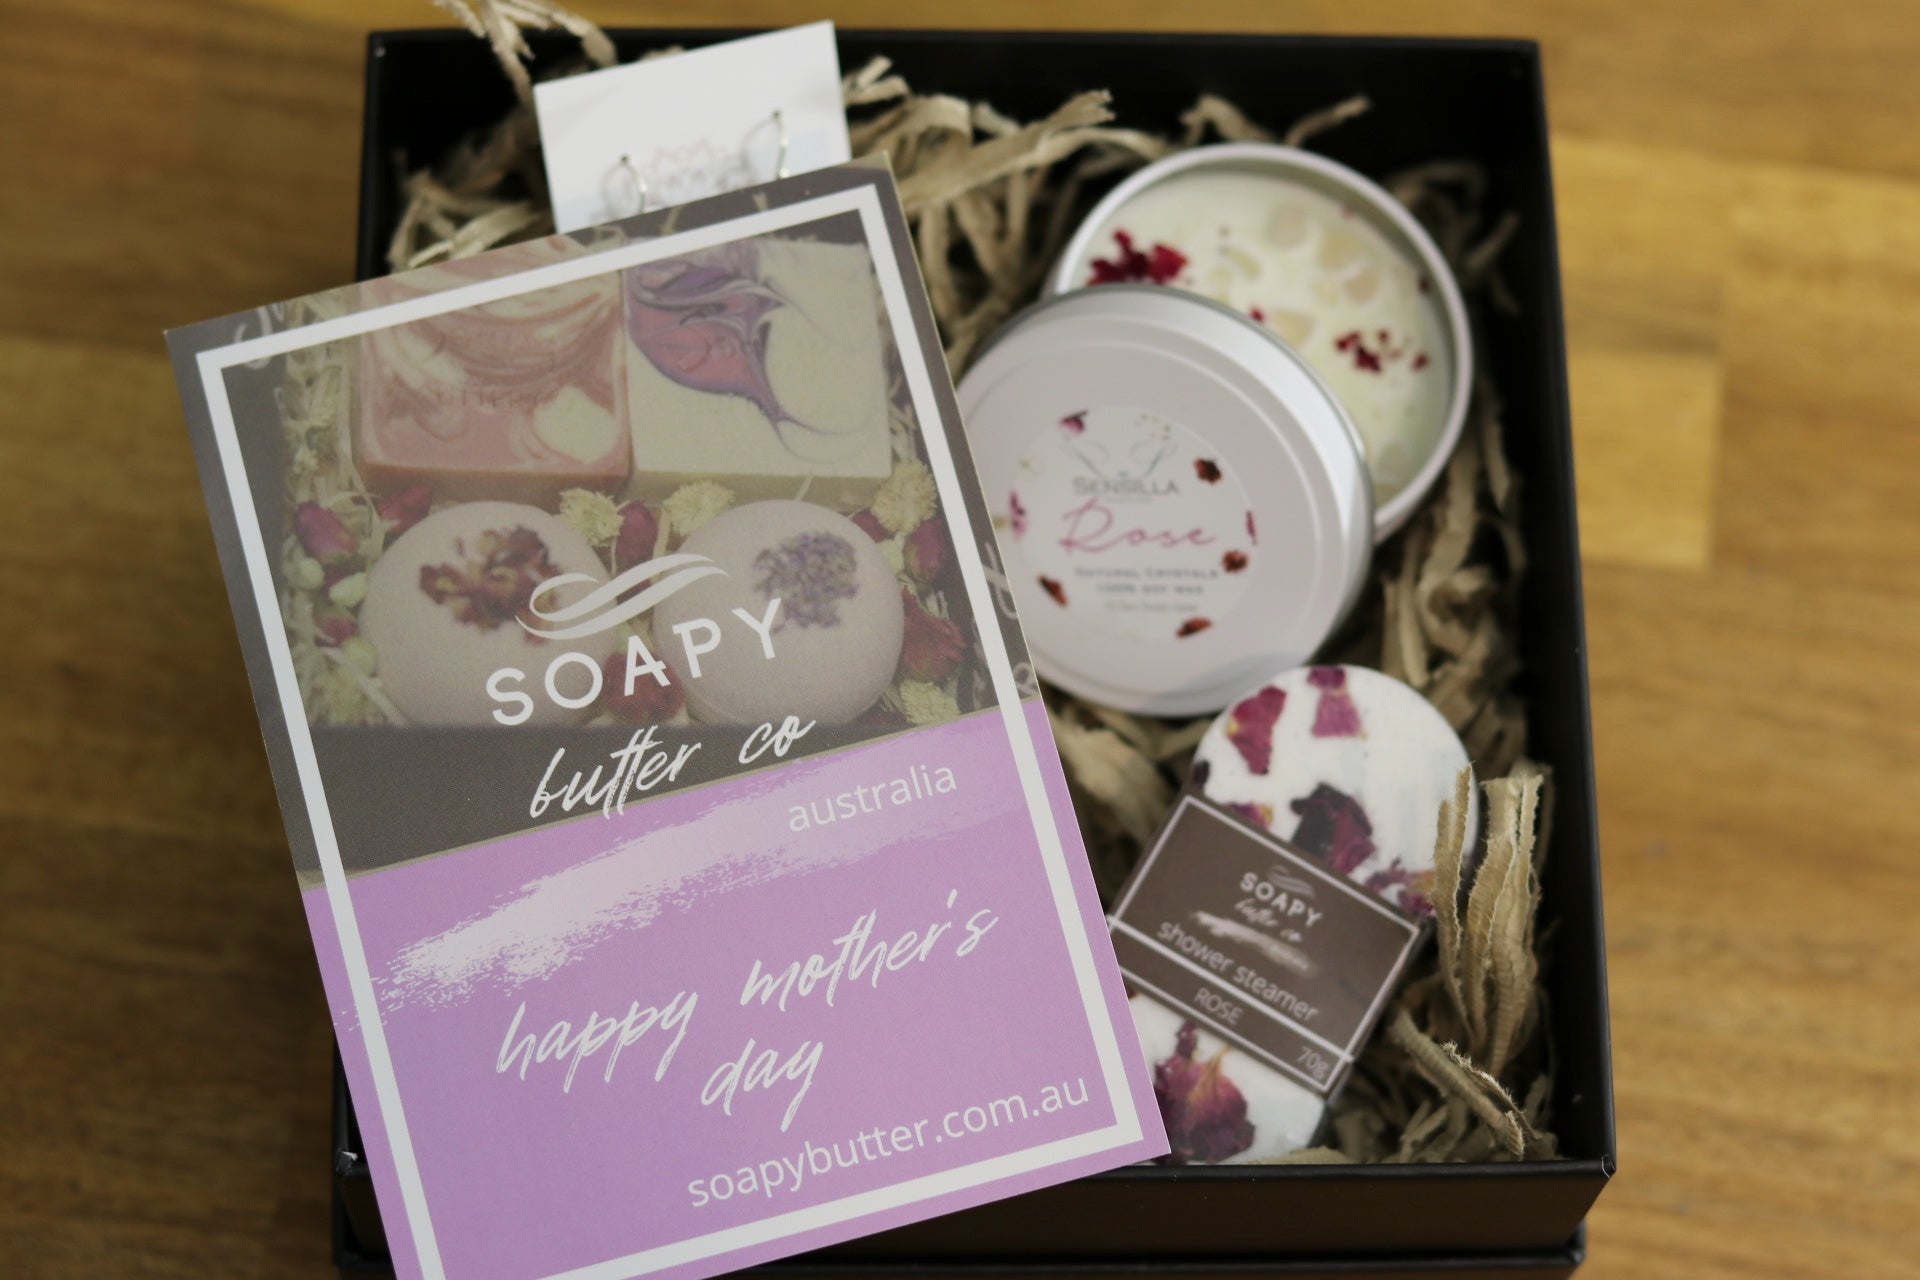 Soapy Butter Co Melbourne rose quartz candle bath bomb soap gift pack